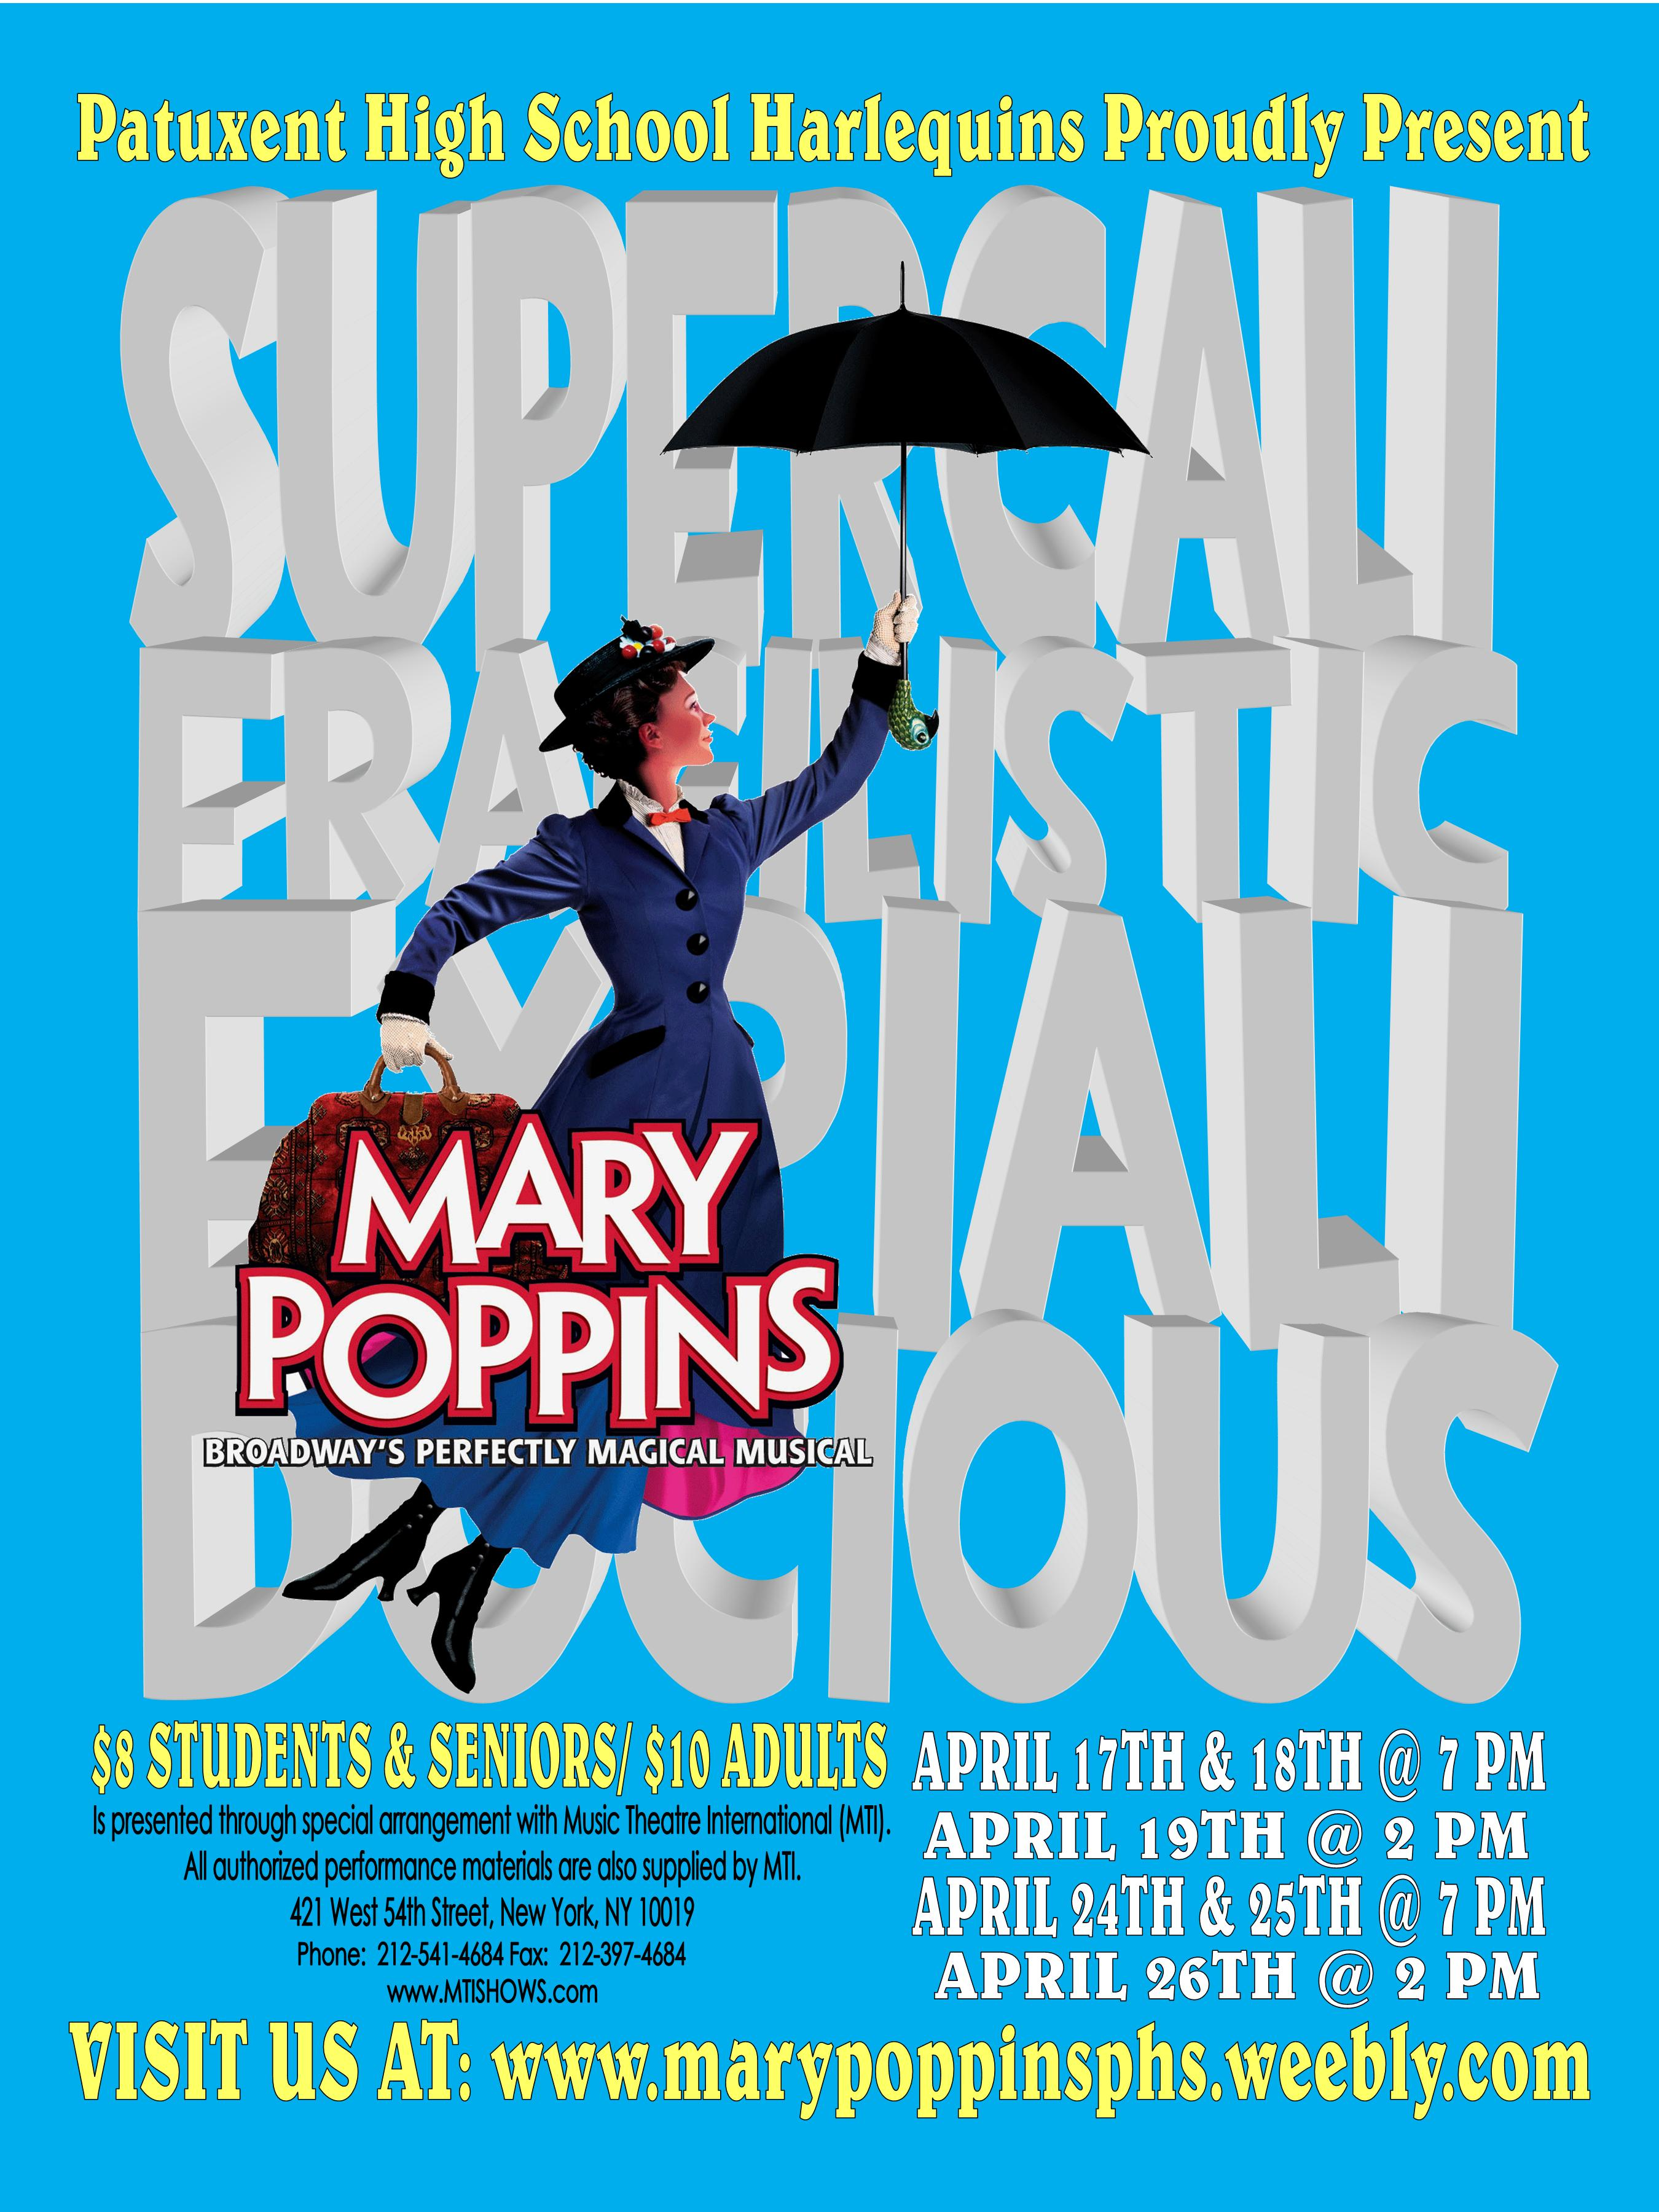 FILES - PATUXENT HARLEQUINS PRESENT MARY POPPINS